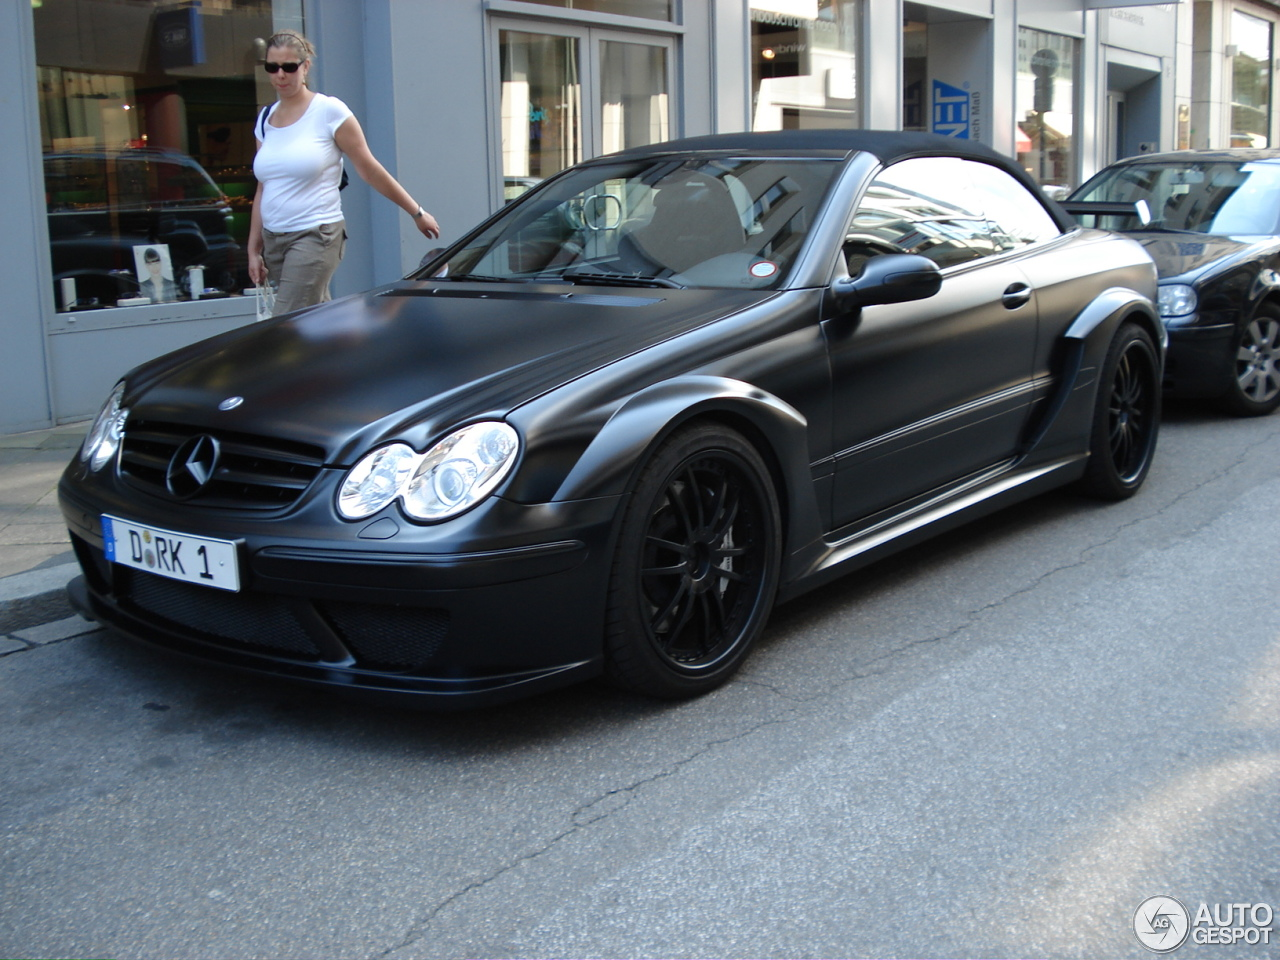 Mercedes benz clk dtm amg cabriolet 31 october 2012 for Mercedes benz clk 2012